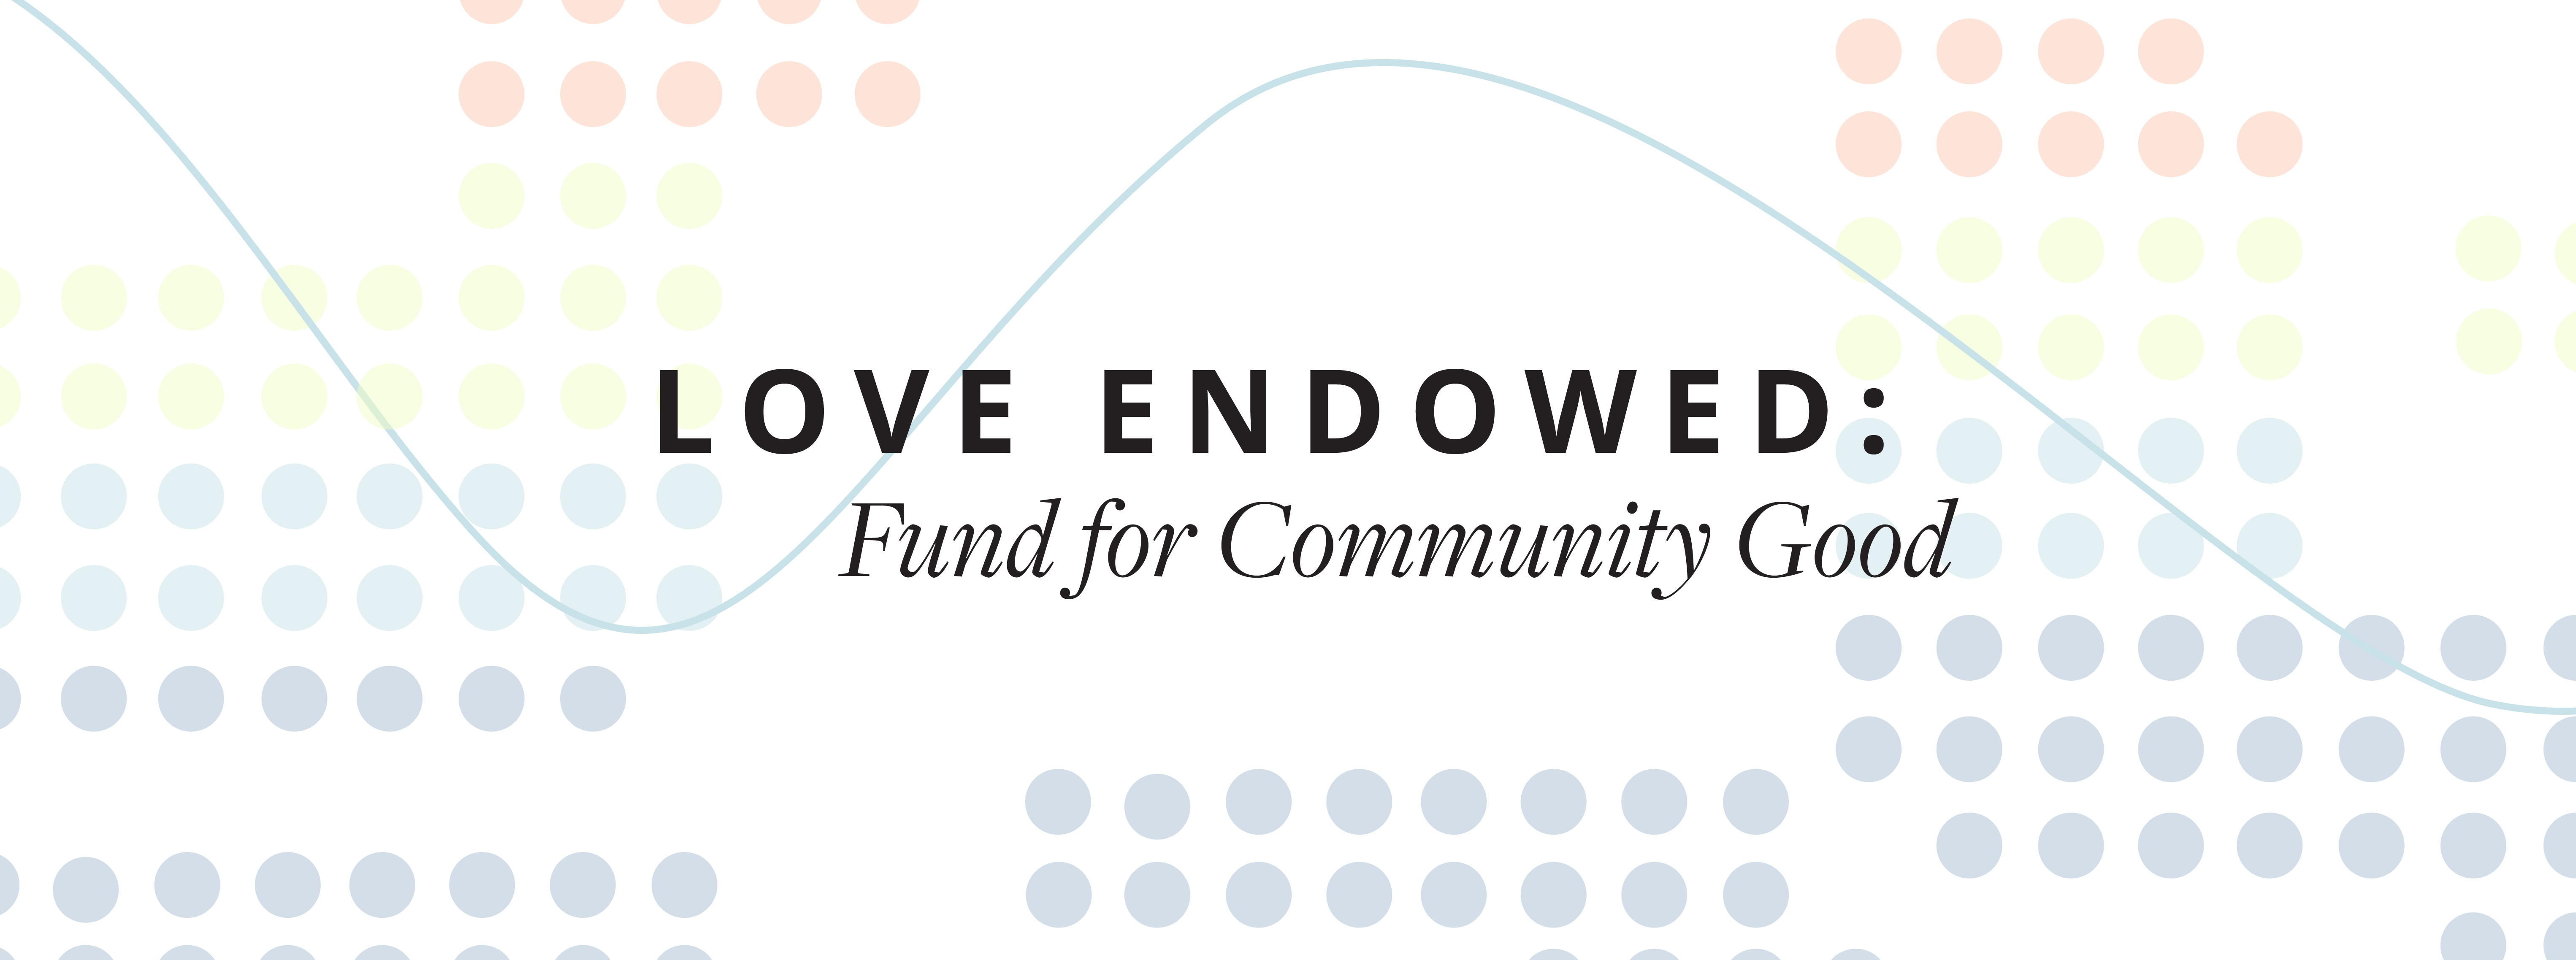 Love Endowed: Fund for the Community Good